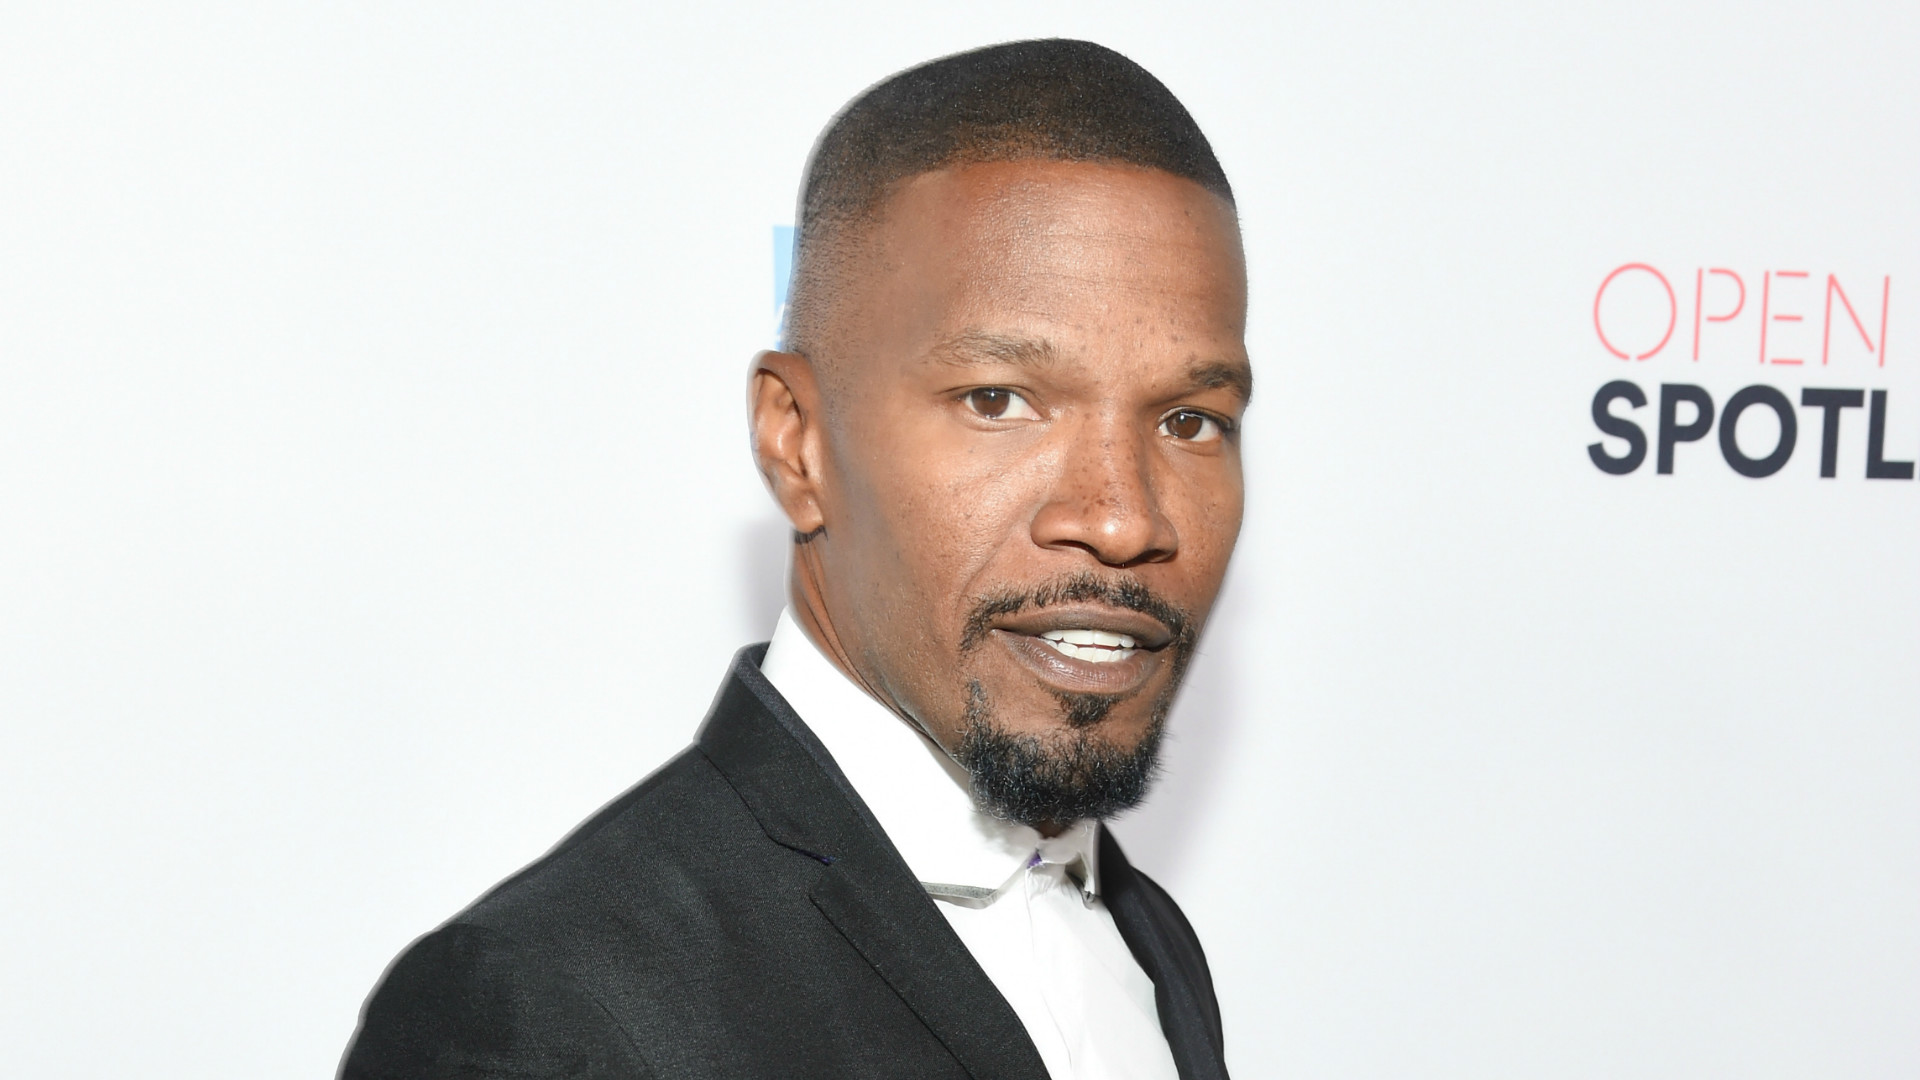 Jamie Foxx poses for a picture.